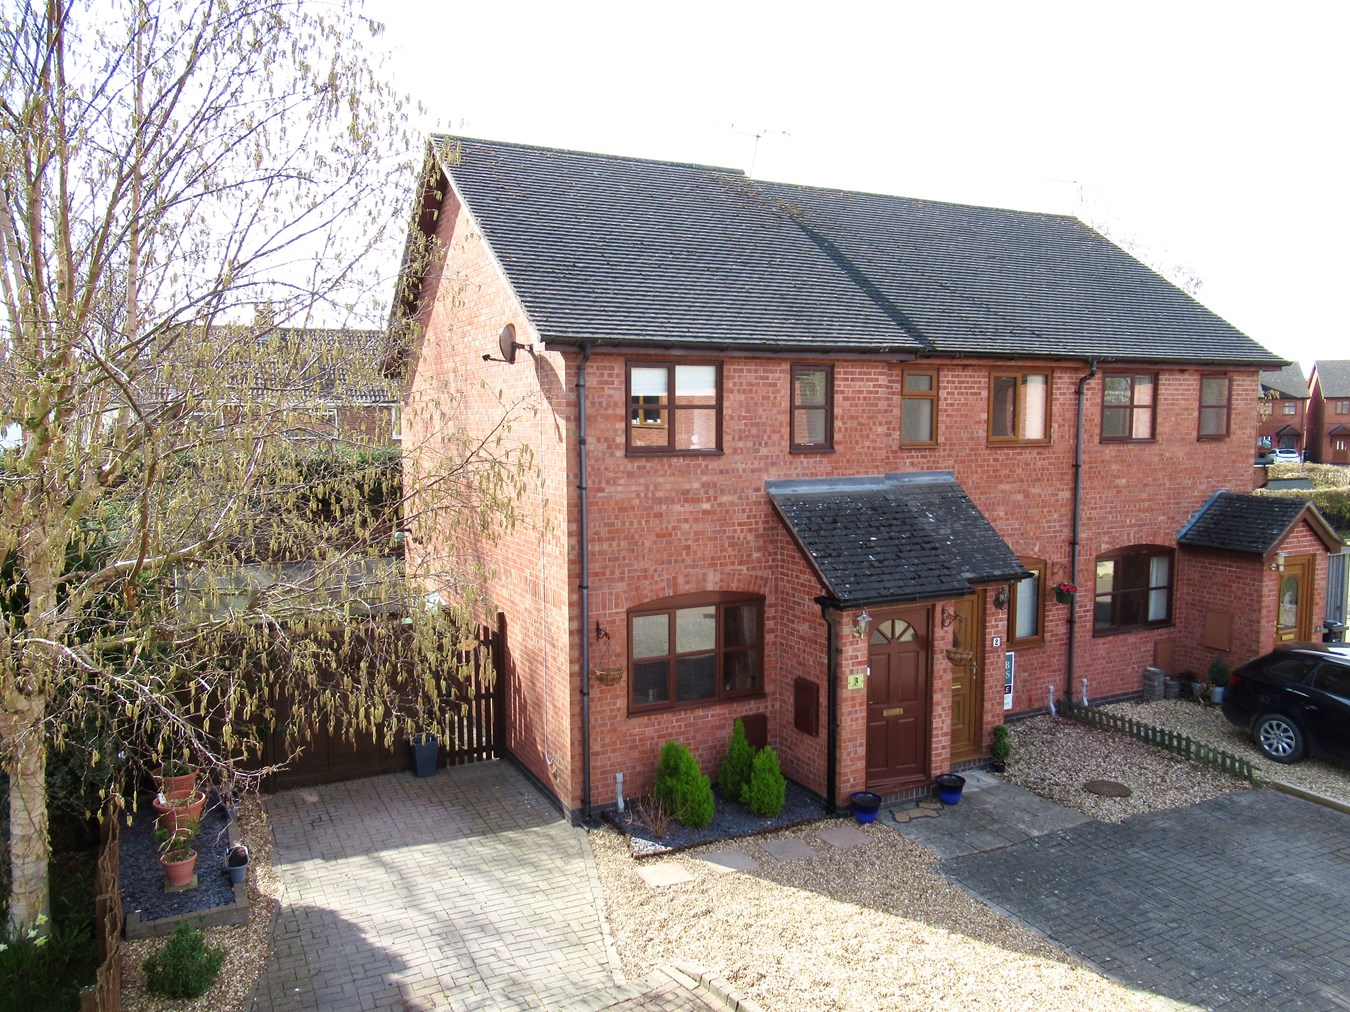 The Willows, Lower Bullingham, Hereford, HR2